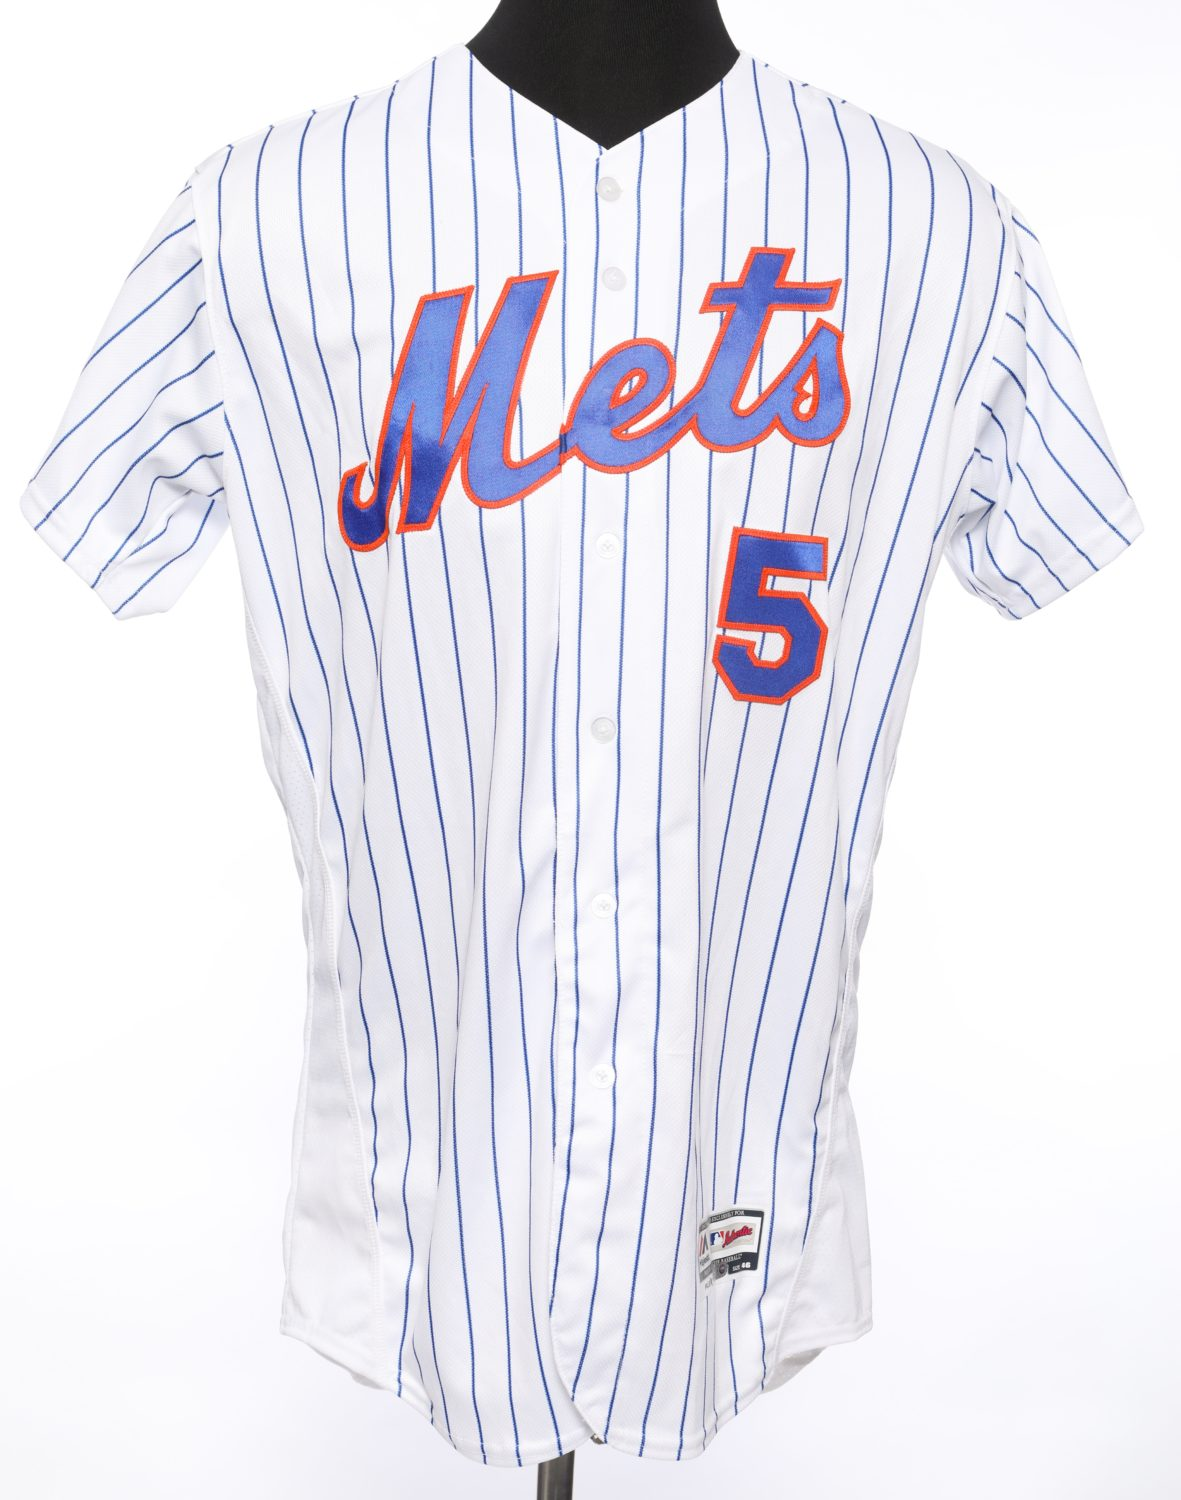 David Wright's Jersey From Final Inning As Met